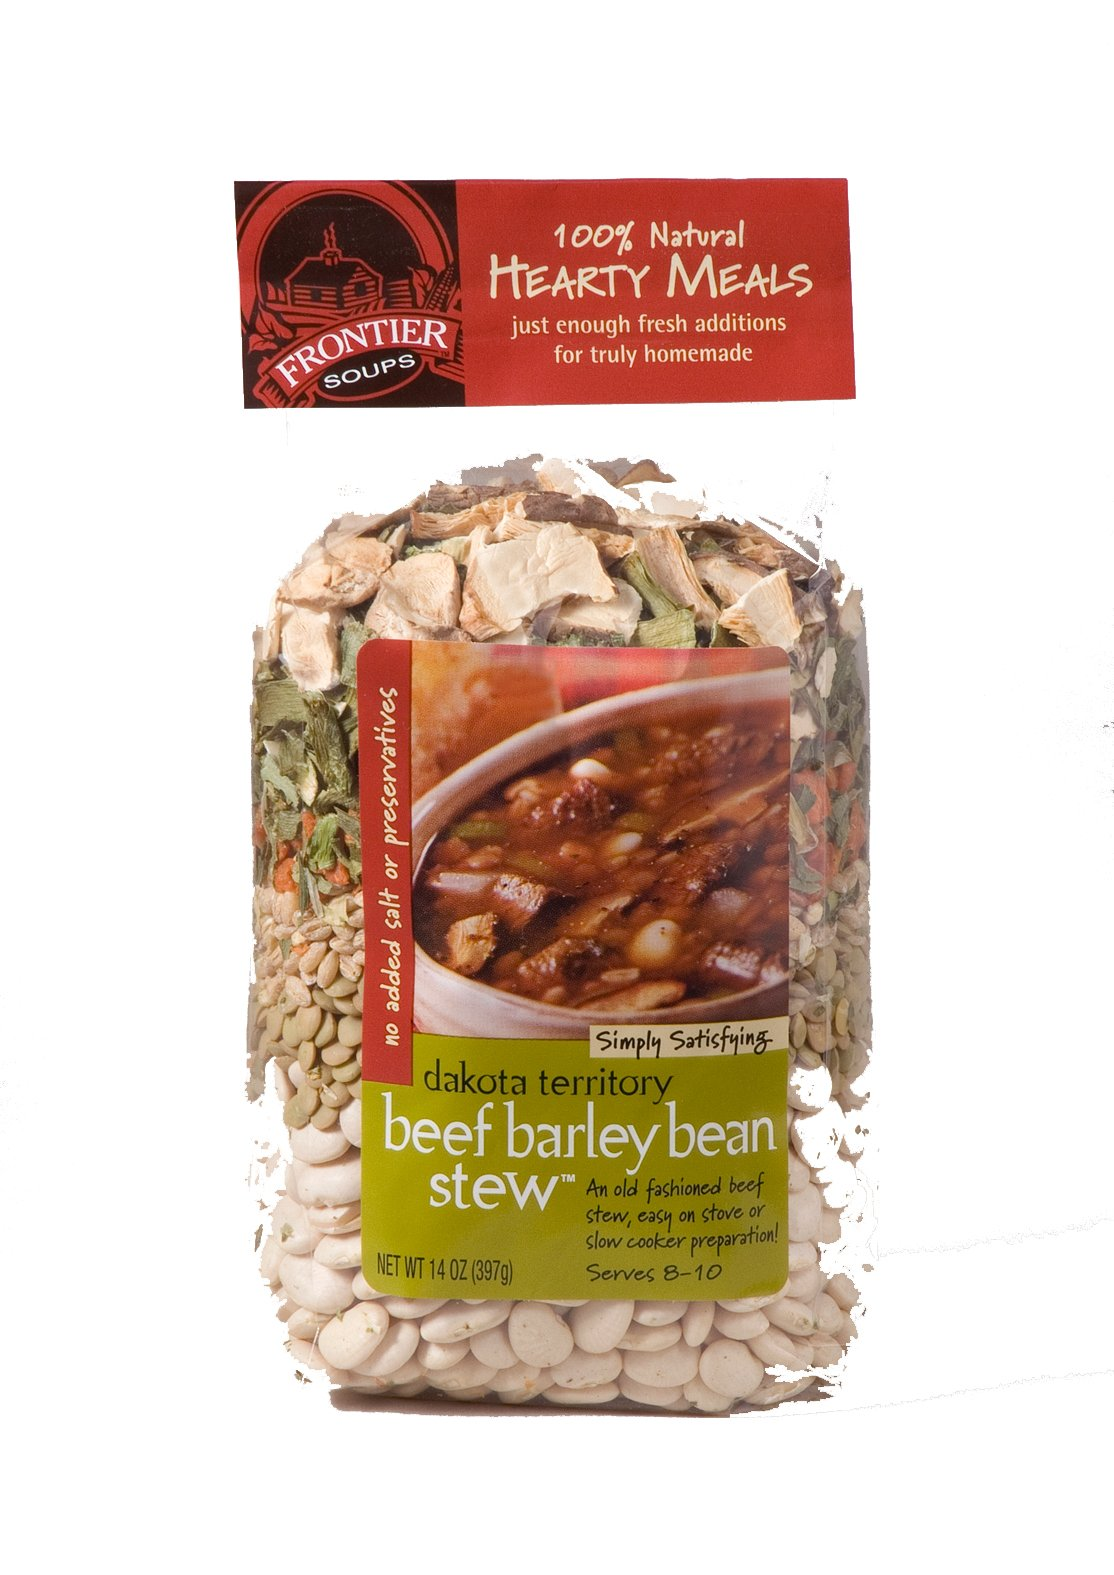 Frontier Soups Hearty Meals Dakota Territory  Beef Barley Bean Stew, 14-Ounce Bags (Pack of 4)